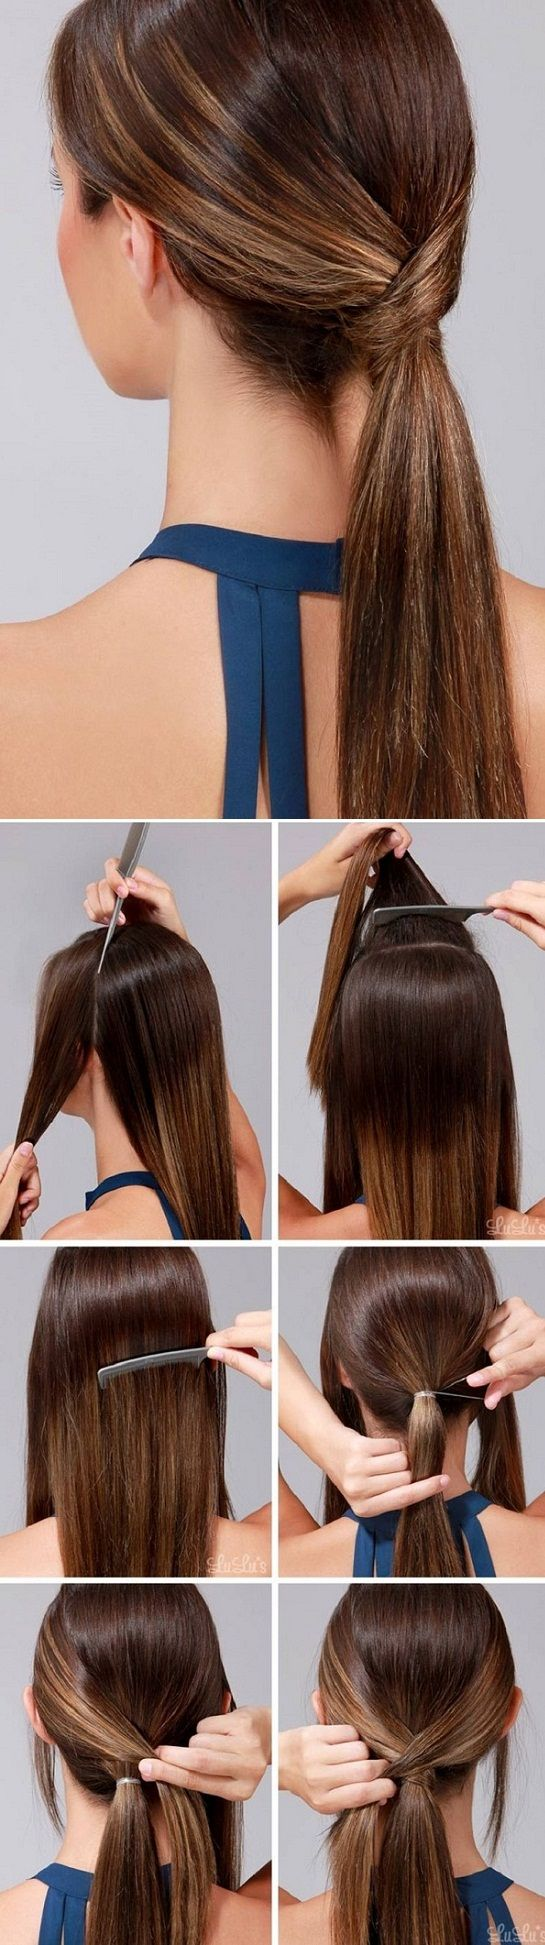 Not sure how to secure hair around binder, pin or pull through binder?